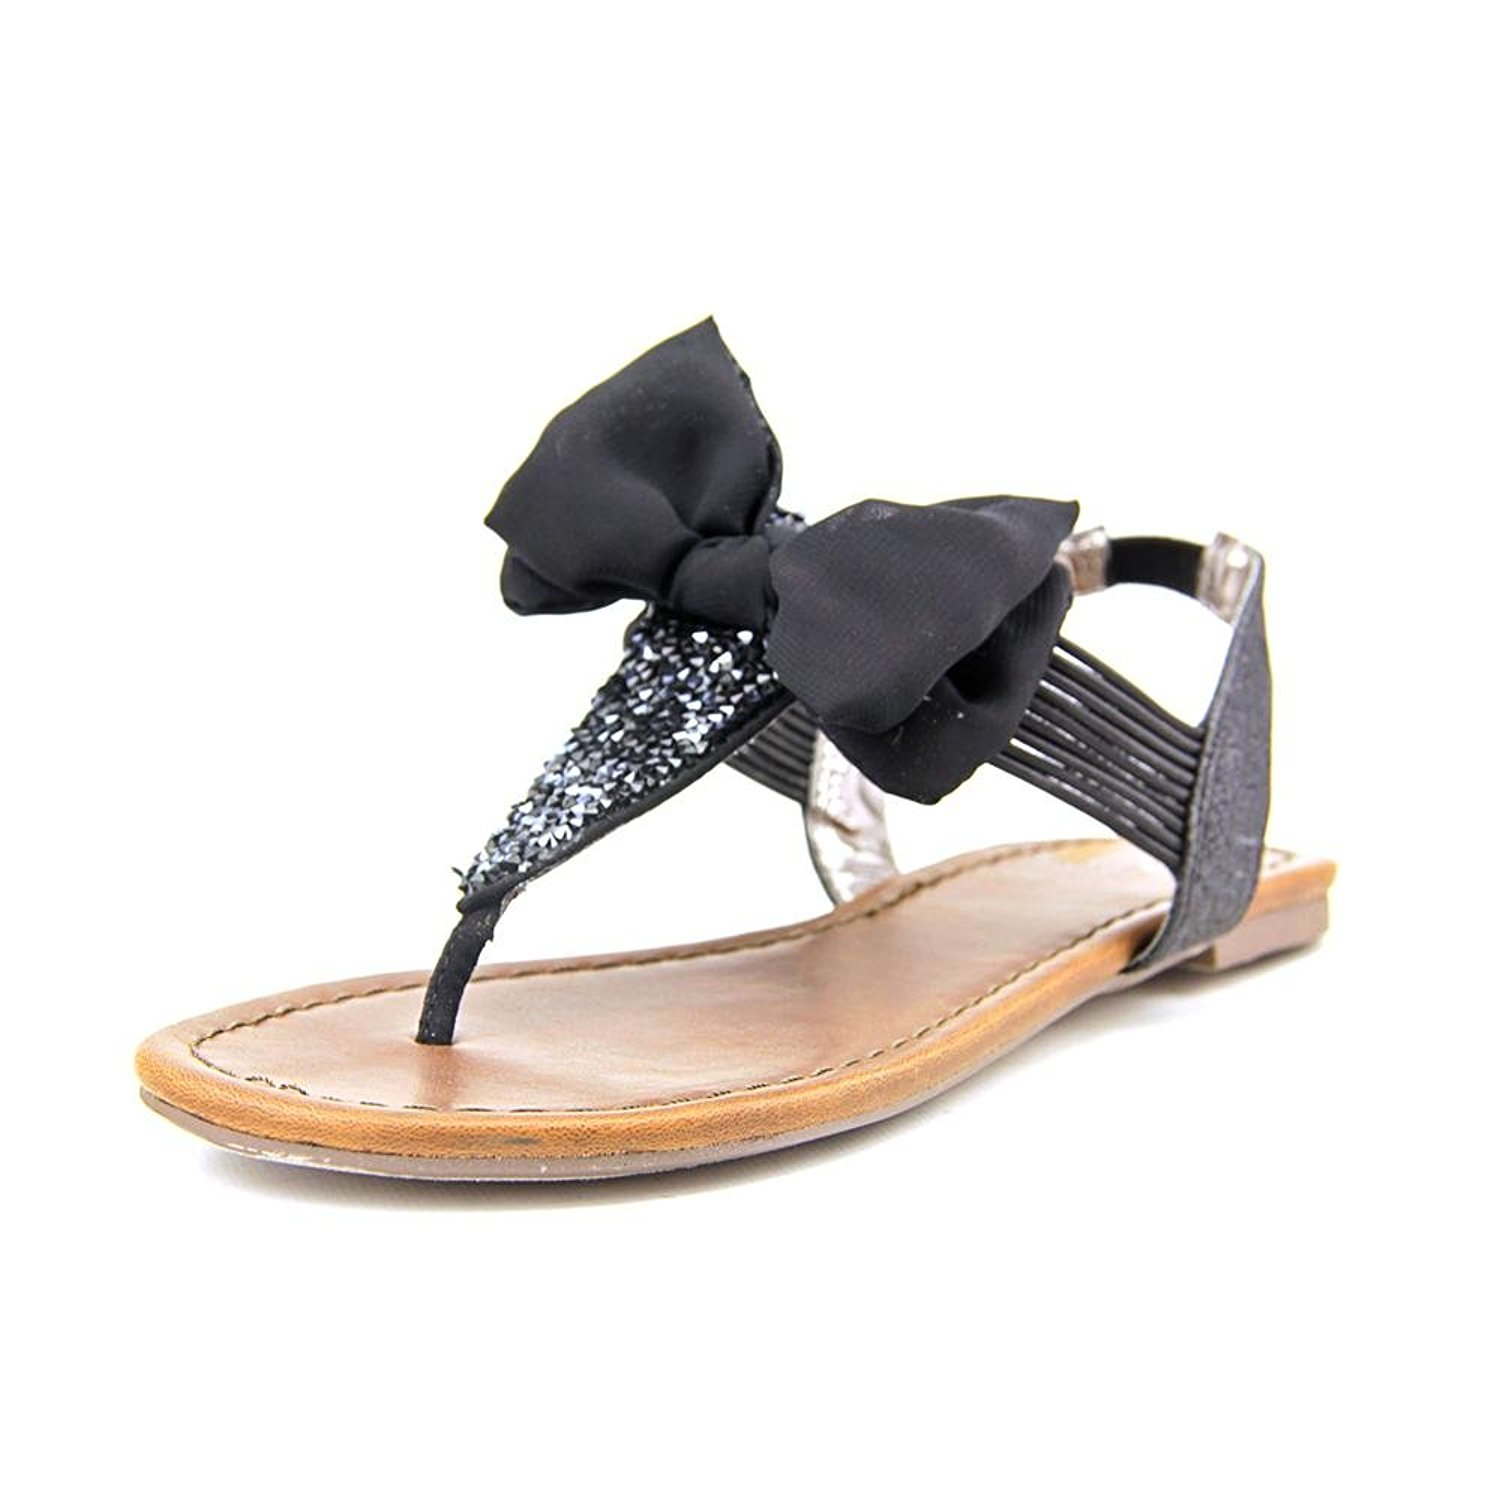 Material Girl Swan Open Toe Synthetic Slingback Sandal Black Size 8.5